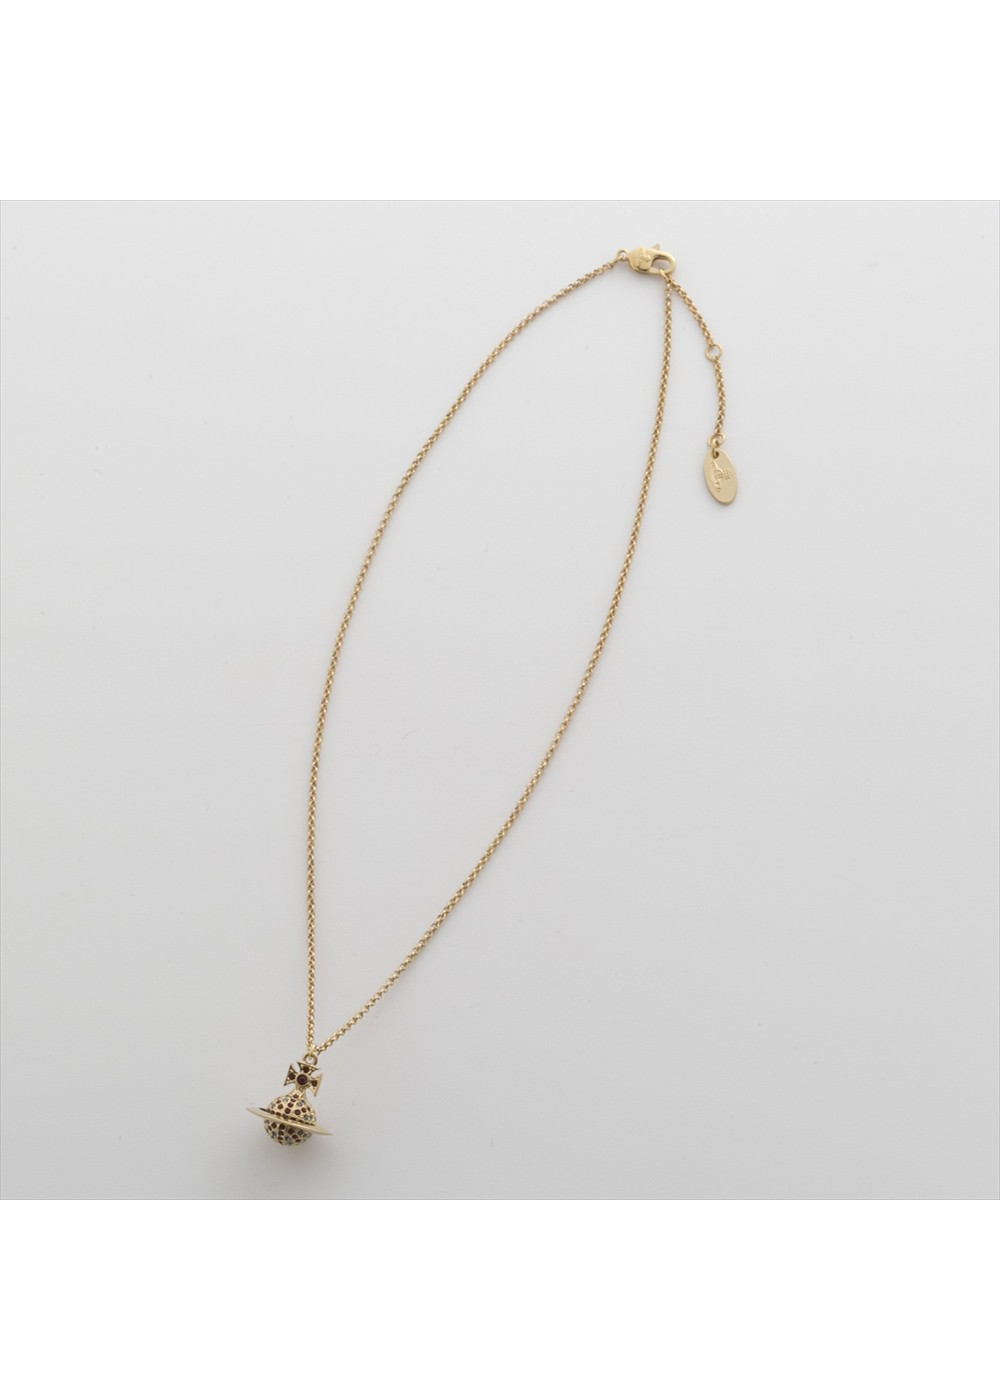 【最大64%OFF】JACK SMALL ORB PENDANT|GOLD|ネックレス|Vivienne Westwood Accessory